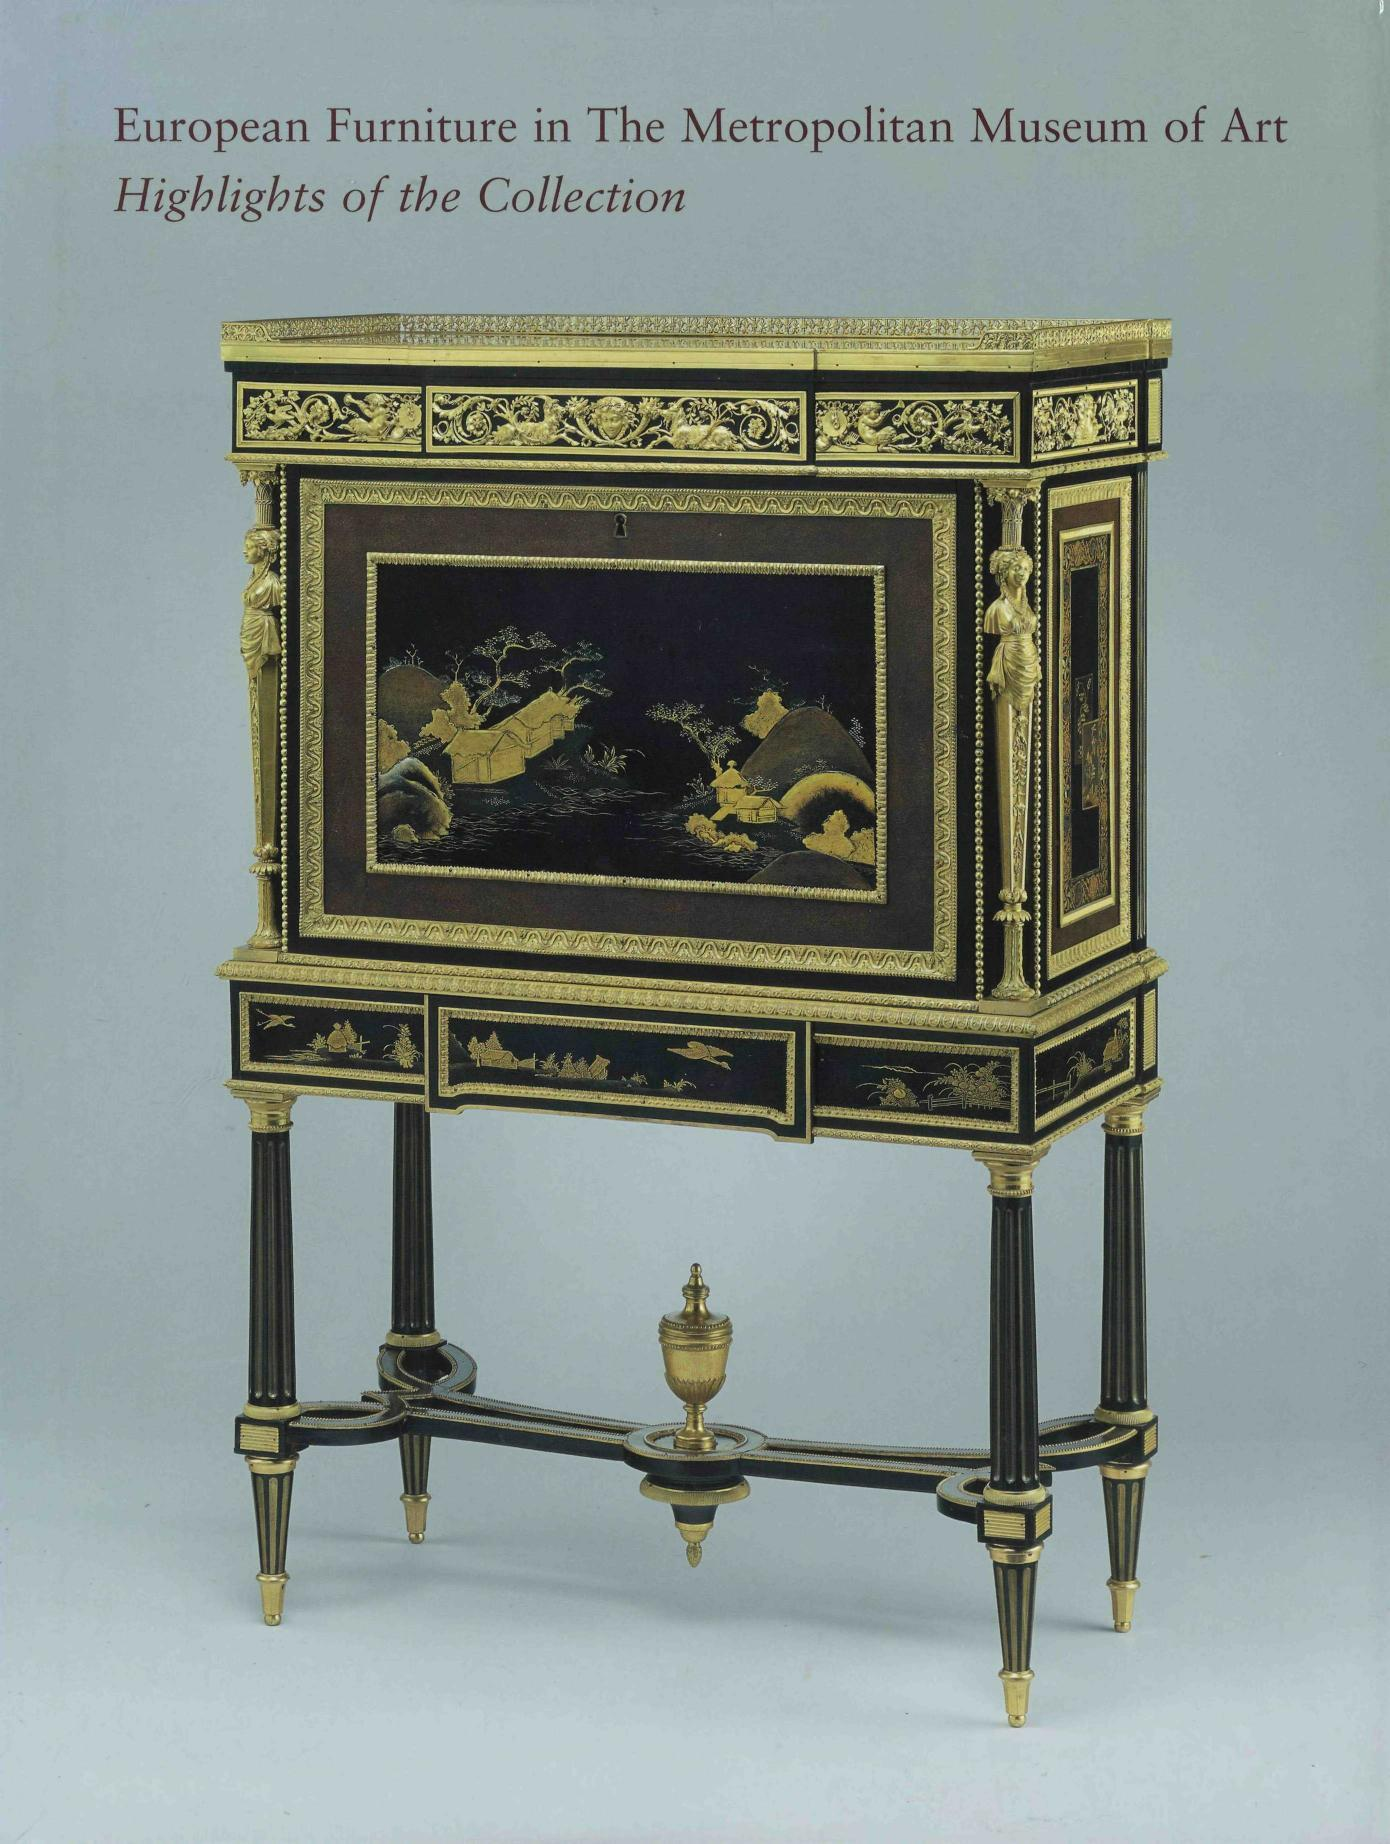 European Furniture in The Metropolitan Museum of Art Highlights of the Collection